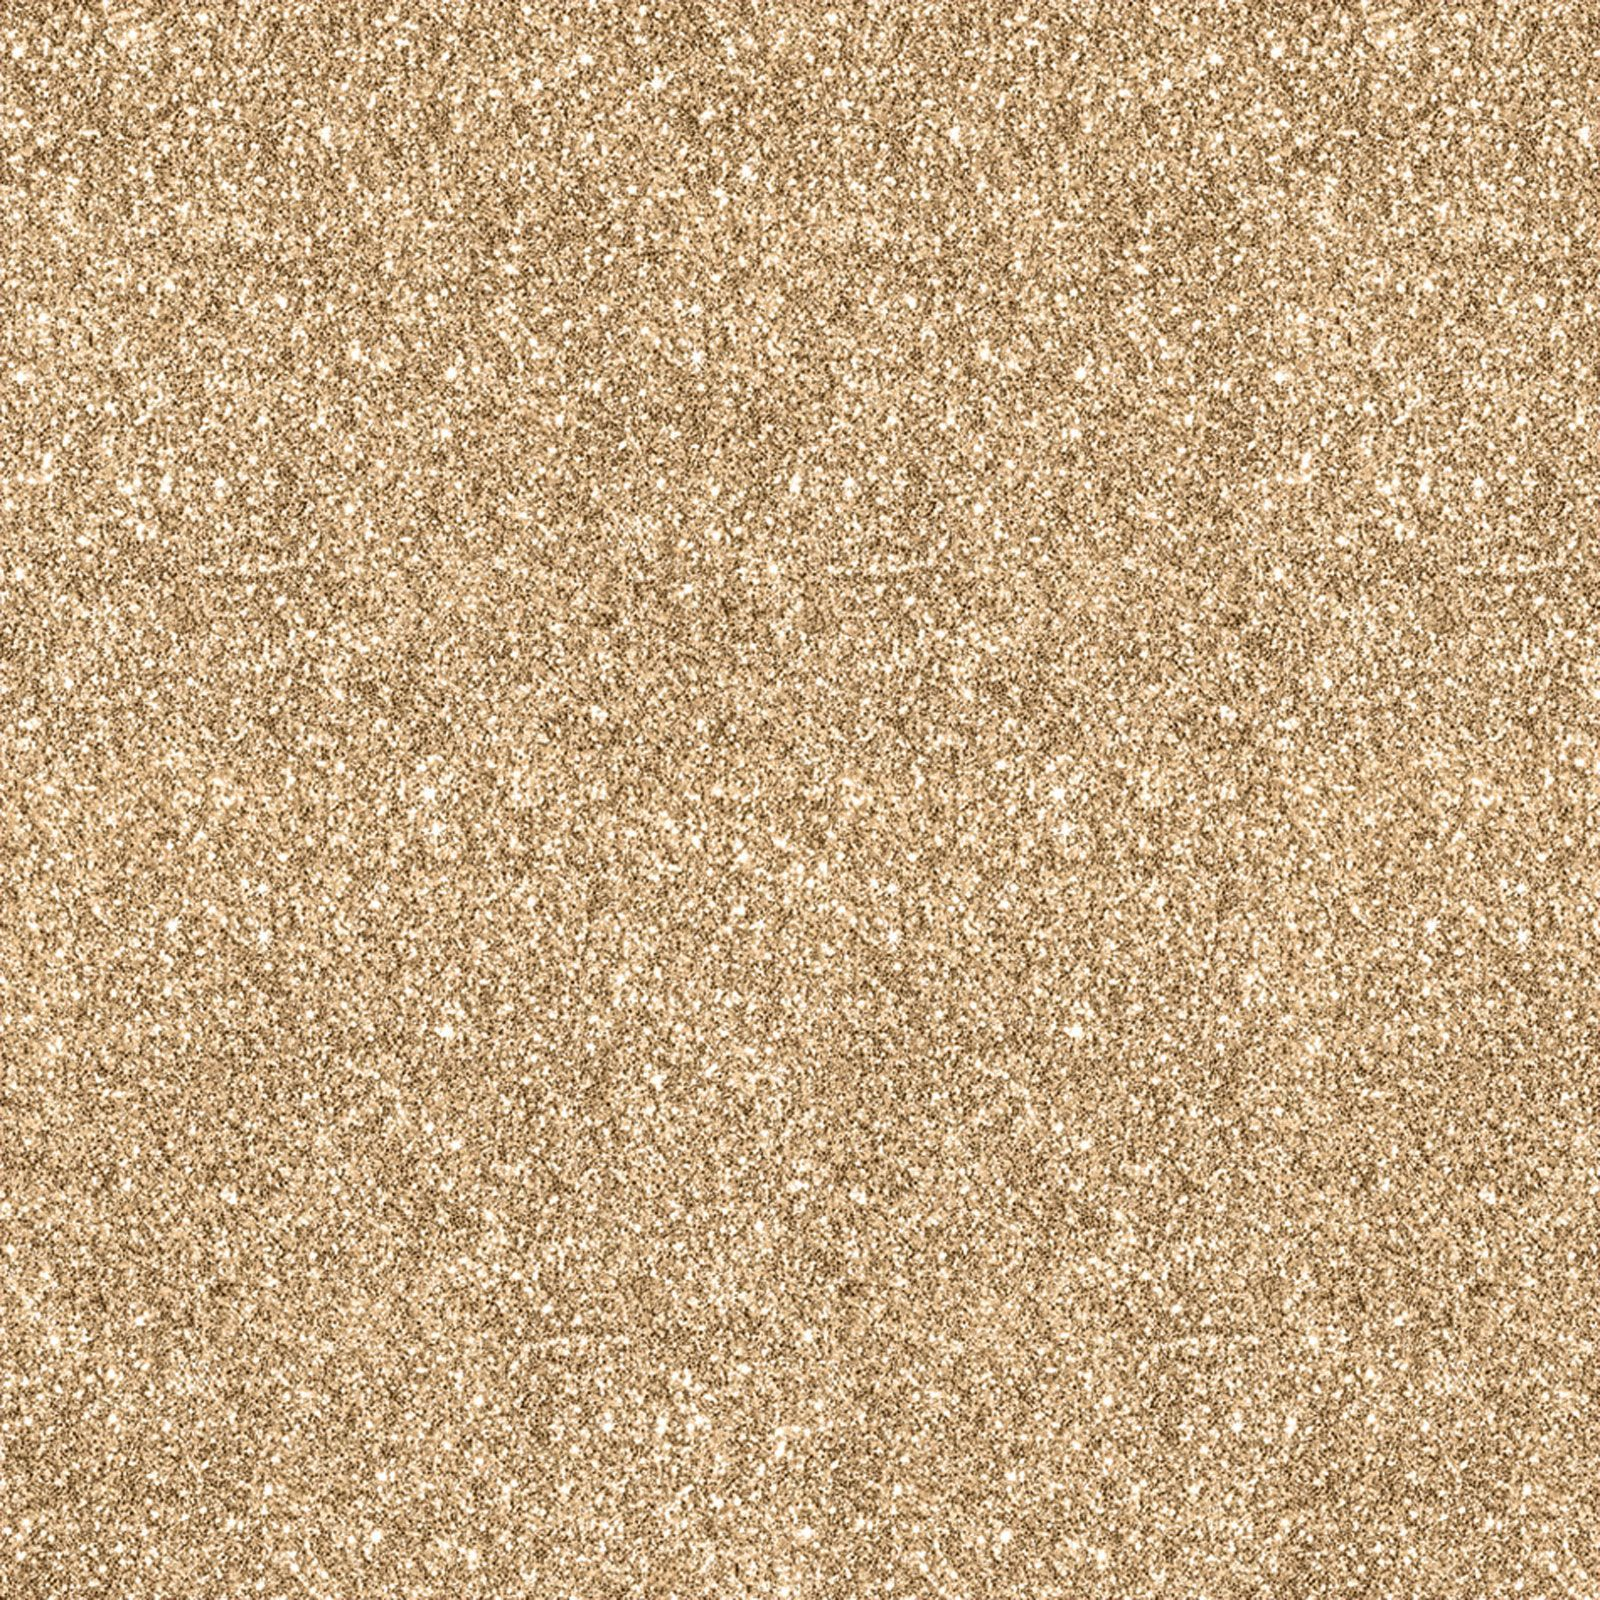 Silver Wallpaper For Bedroom Sparkle Glitter Wallpaper Ideal For Feature Walls Pink Gold Silver